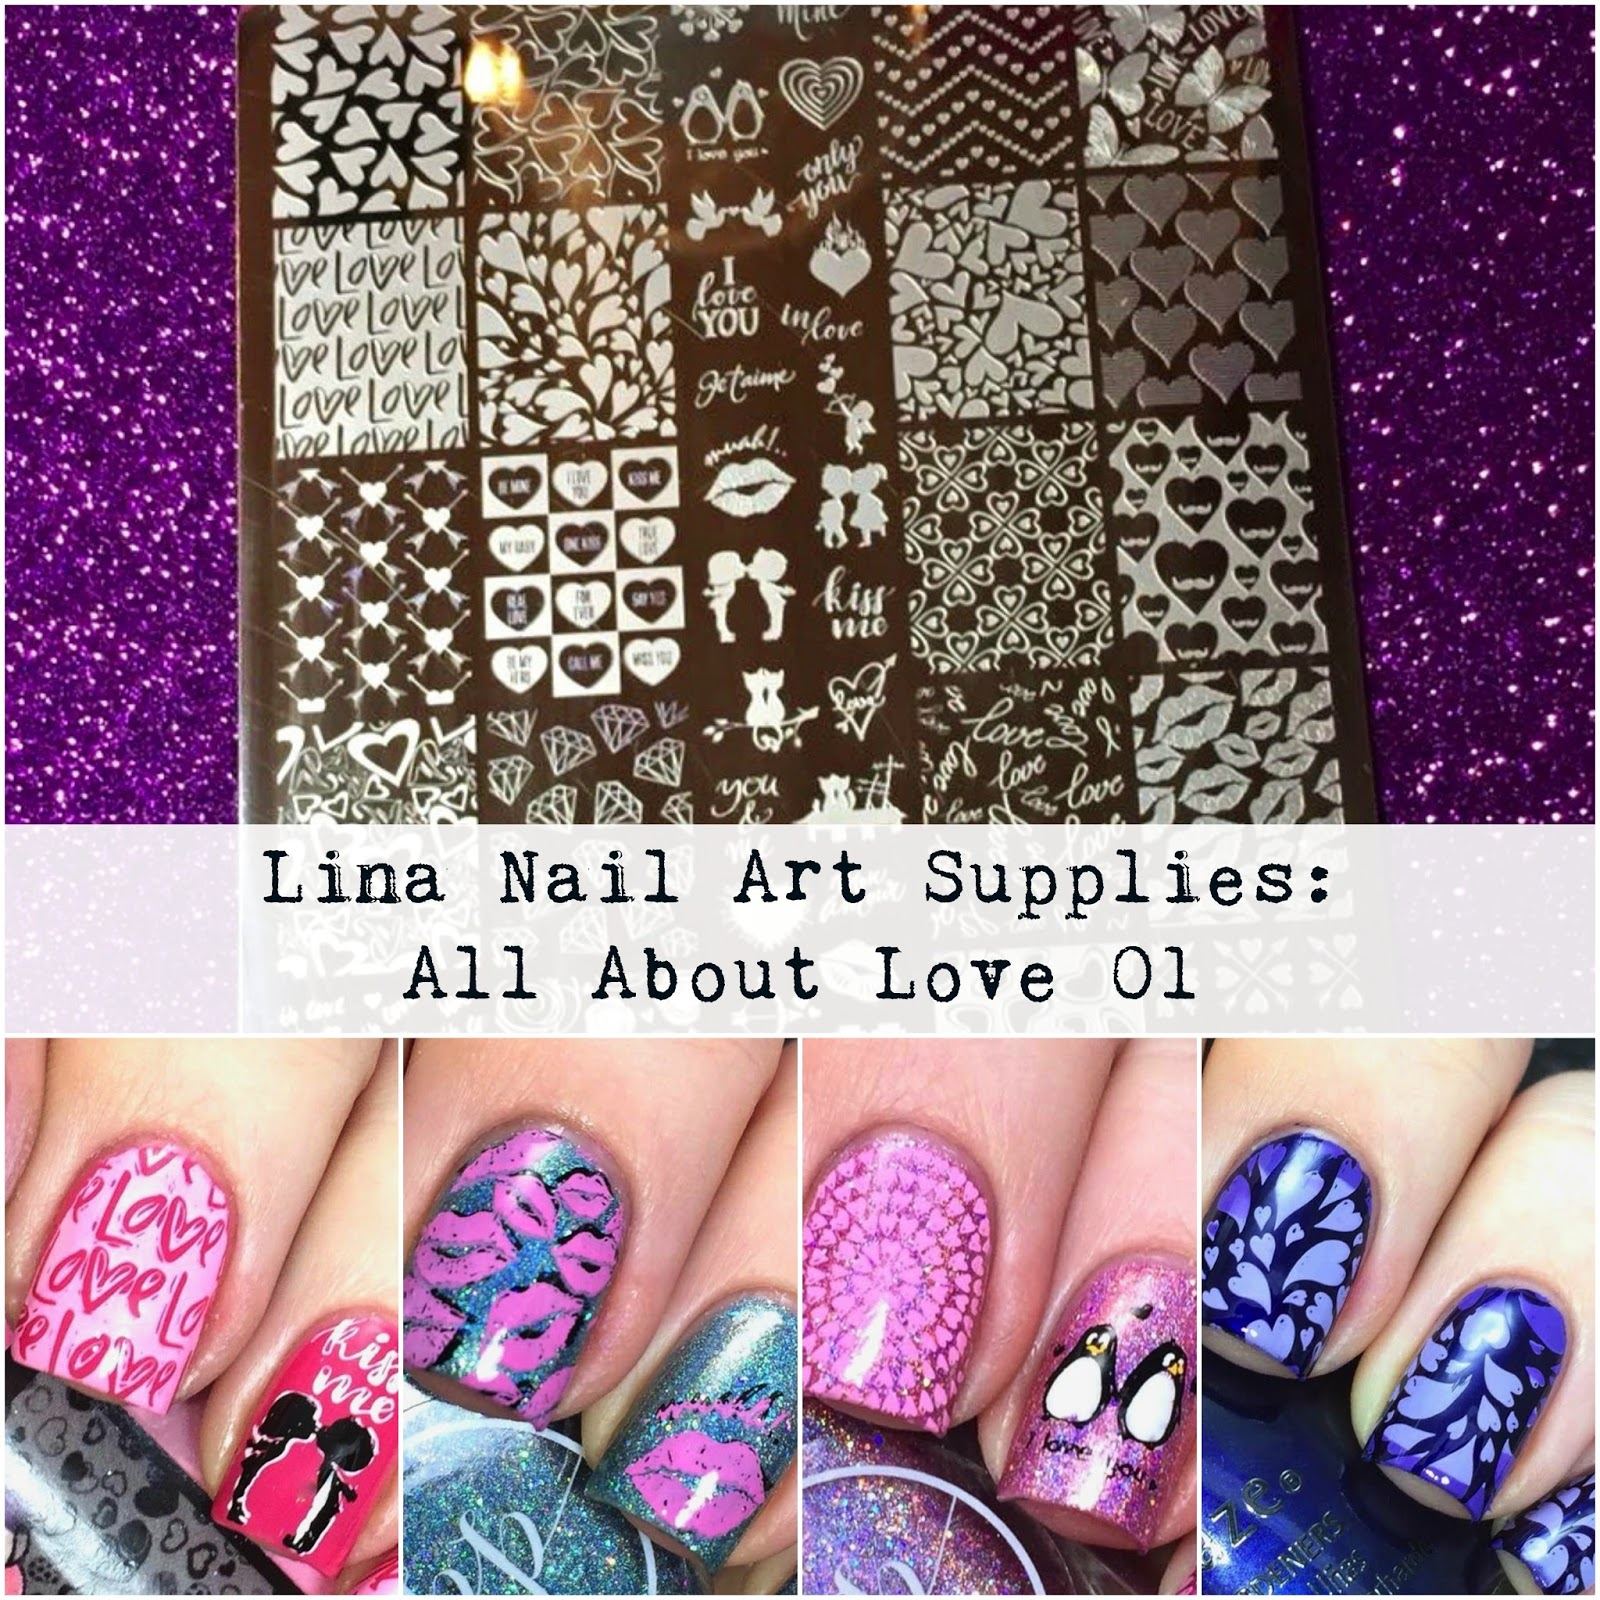 FairyTales Nails: Lina Nail Art Supplies: All About Love 01